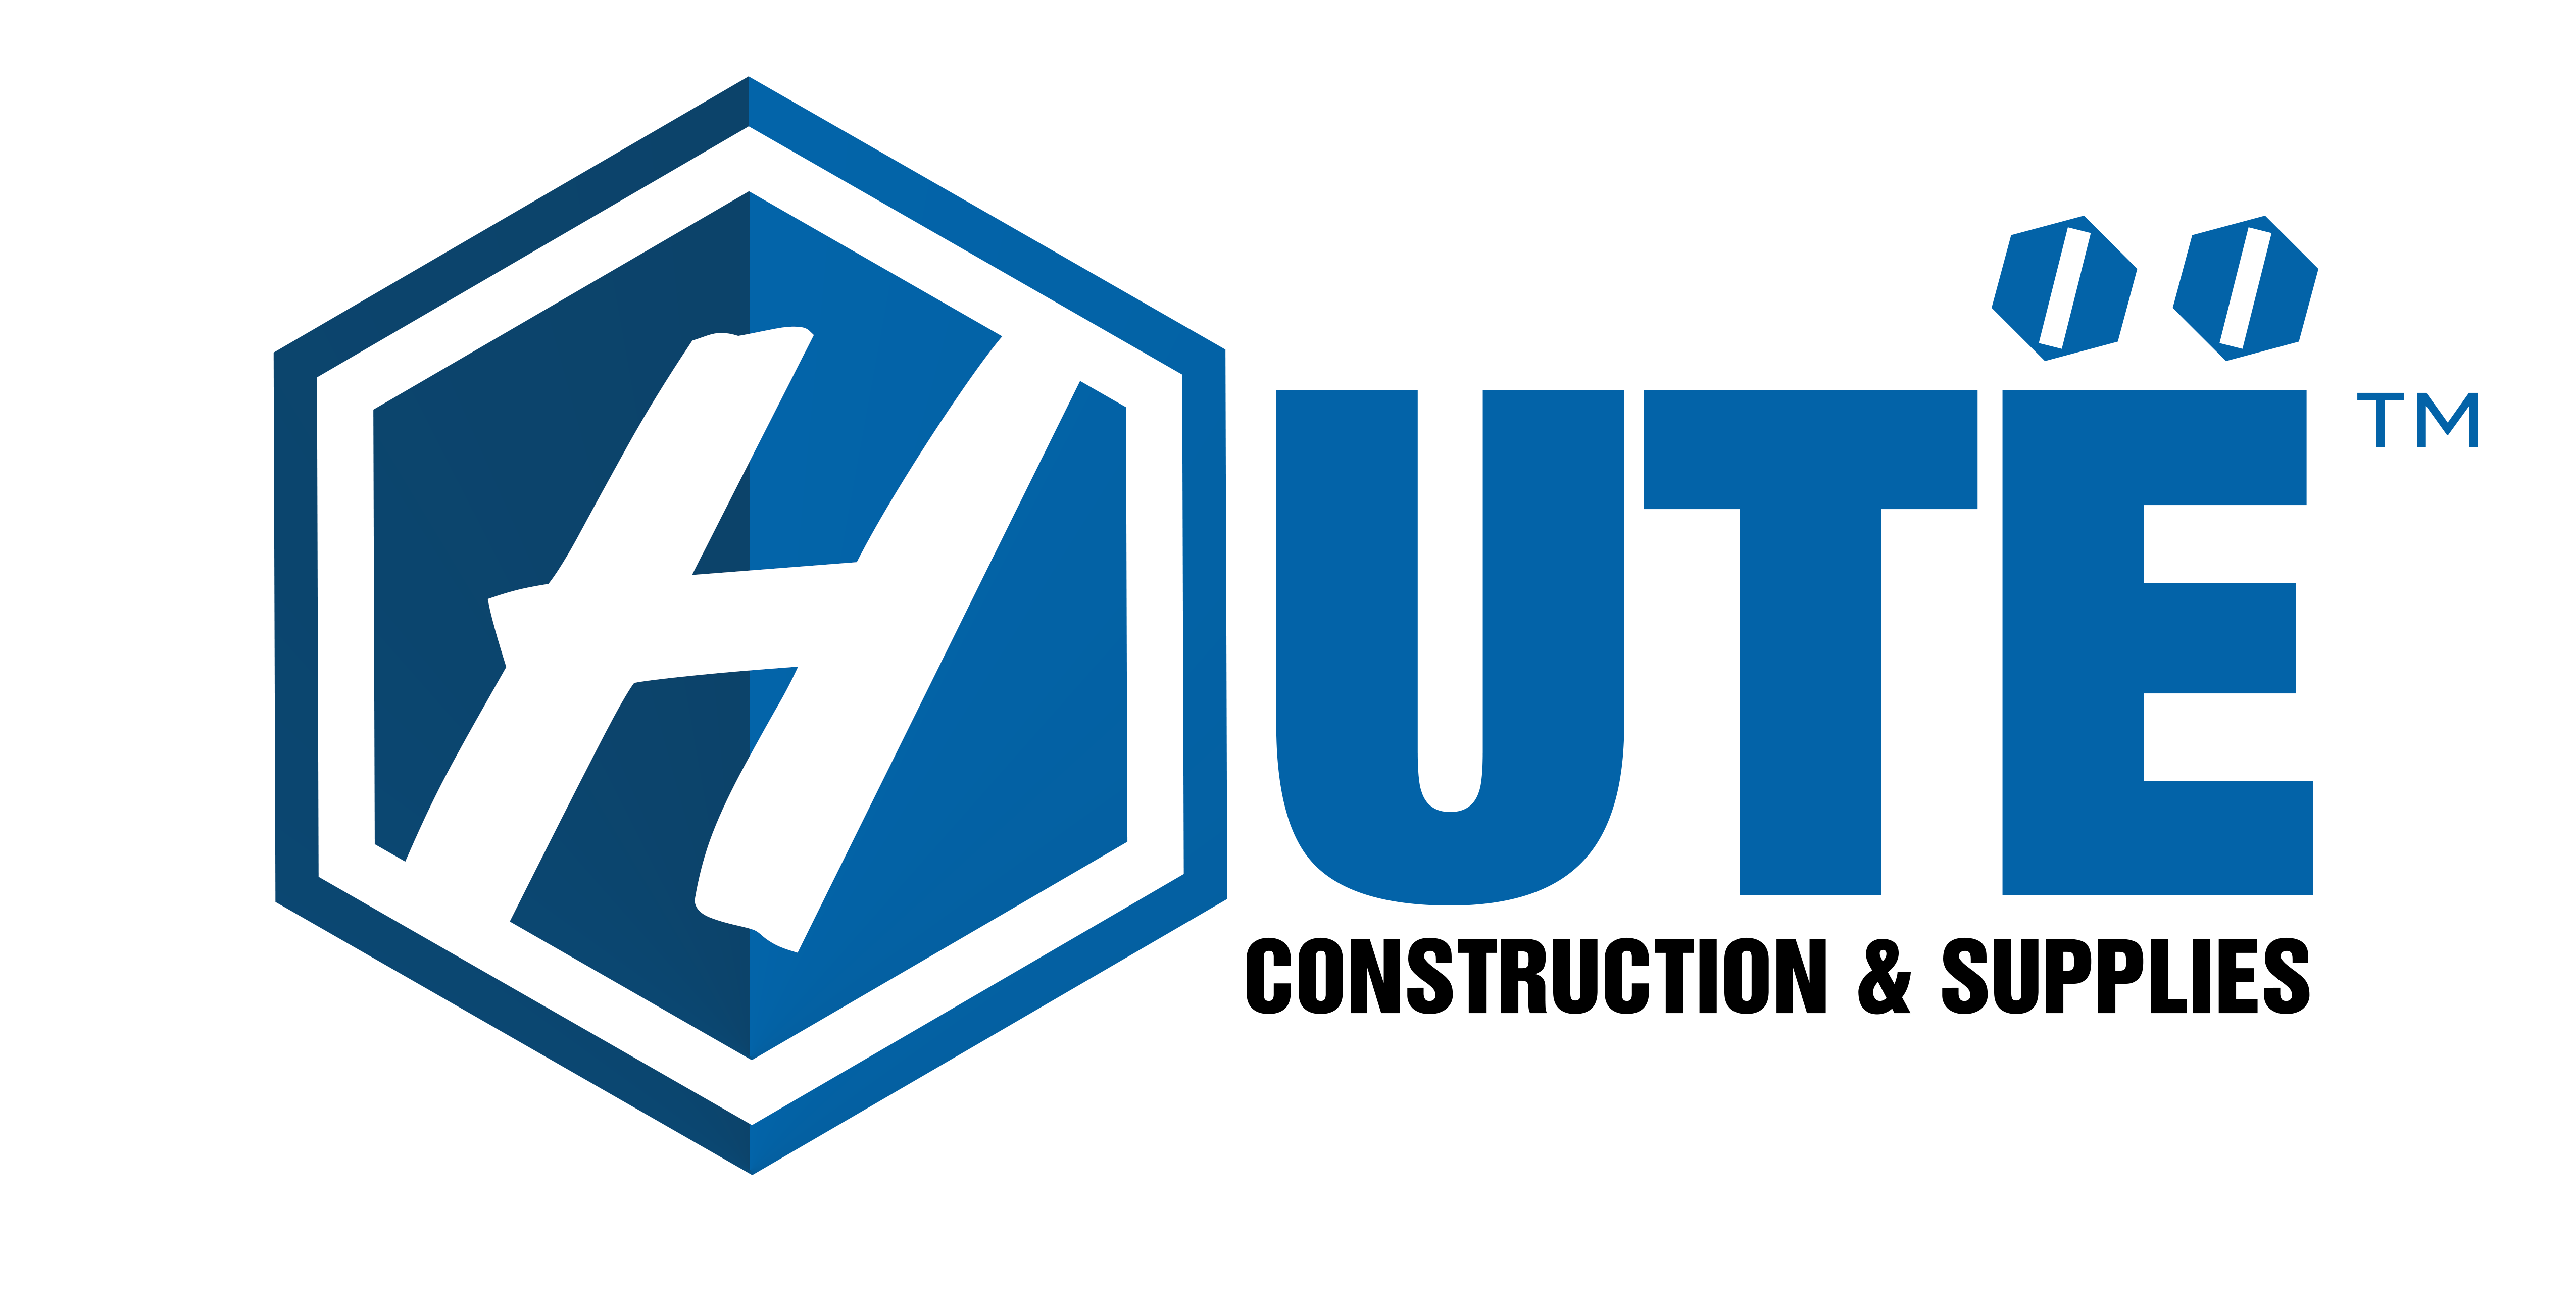 Hute Construction and Supplies Inc.